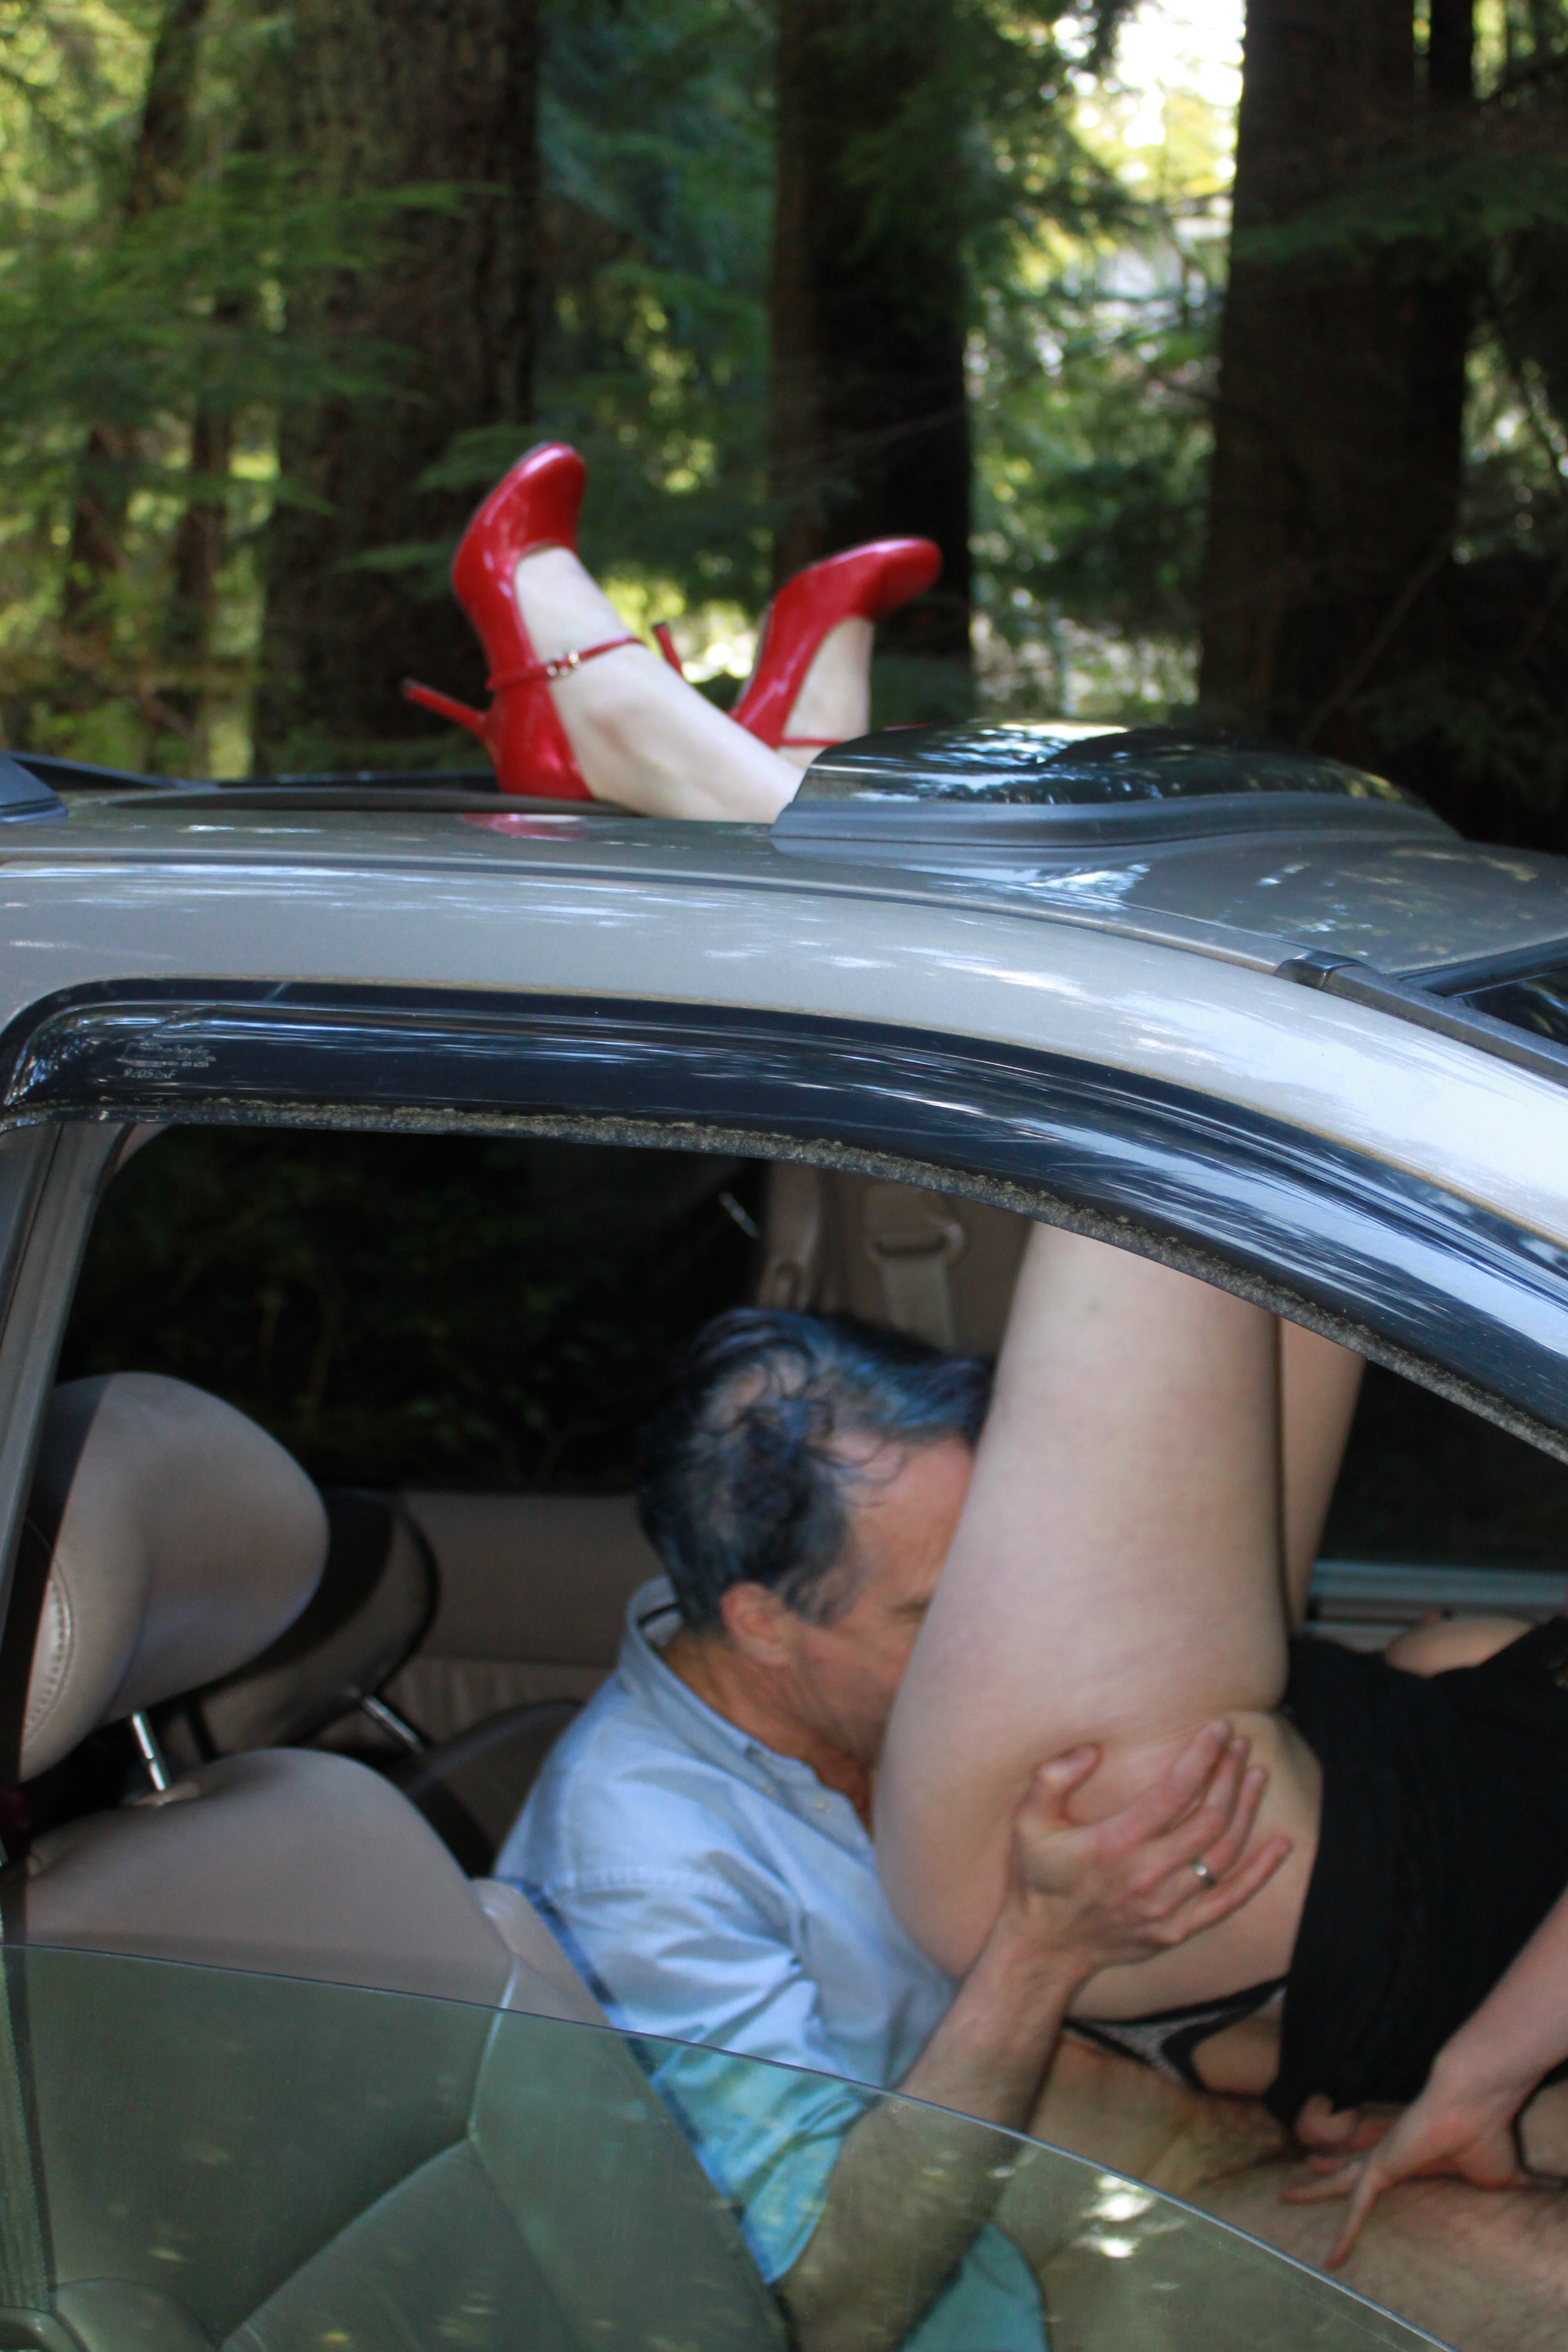 He Masturbates In The Car While Driving